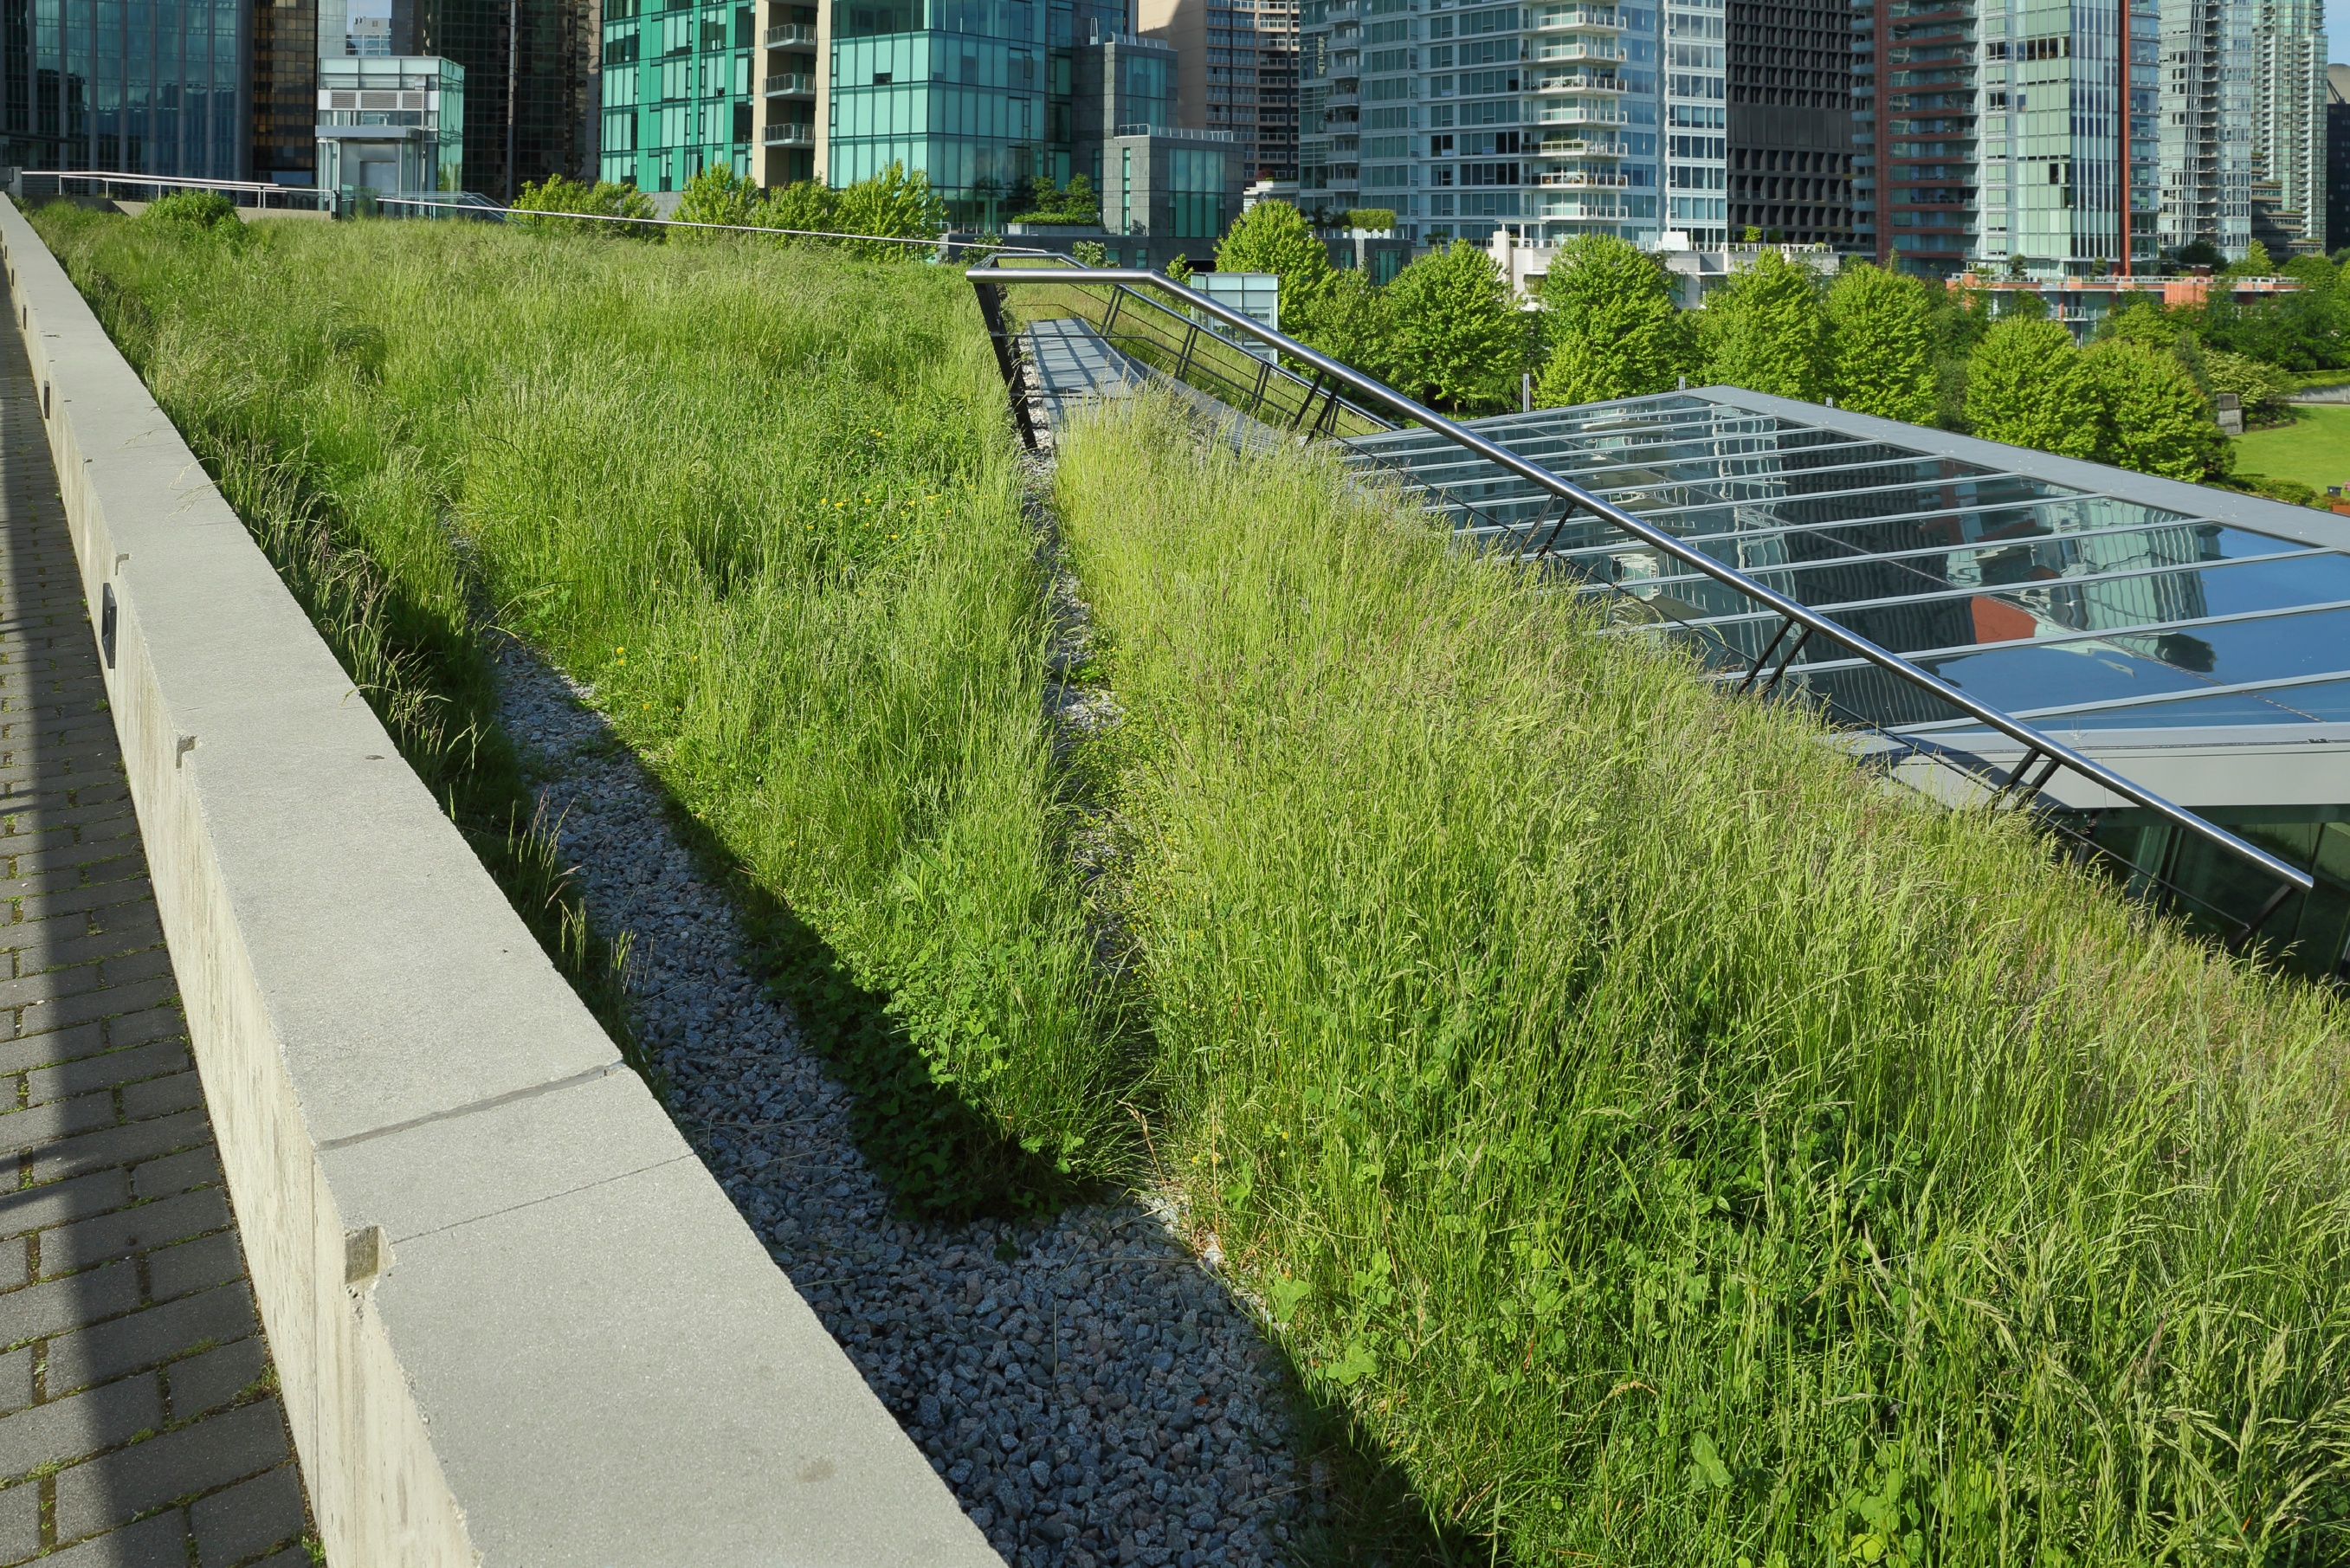 Grass-Growing-on-a-Green-Roof-000041128570_Large.jpg